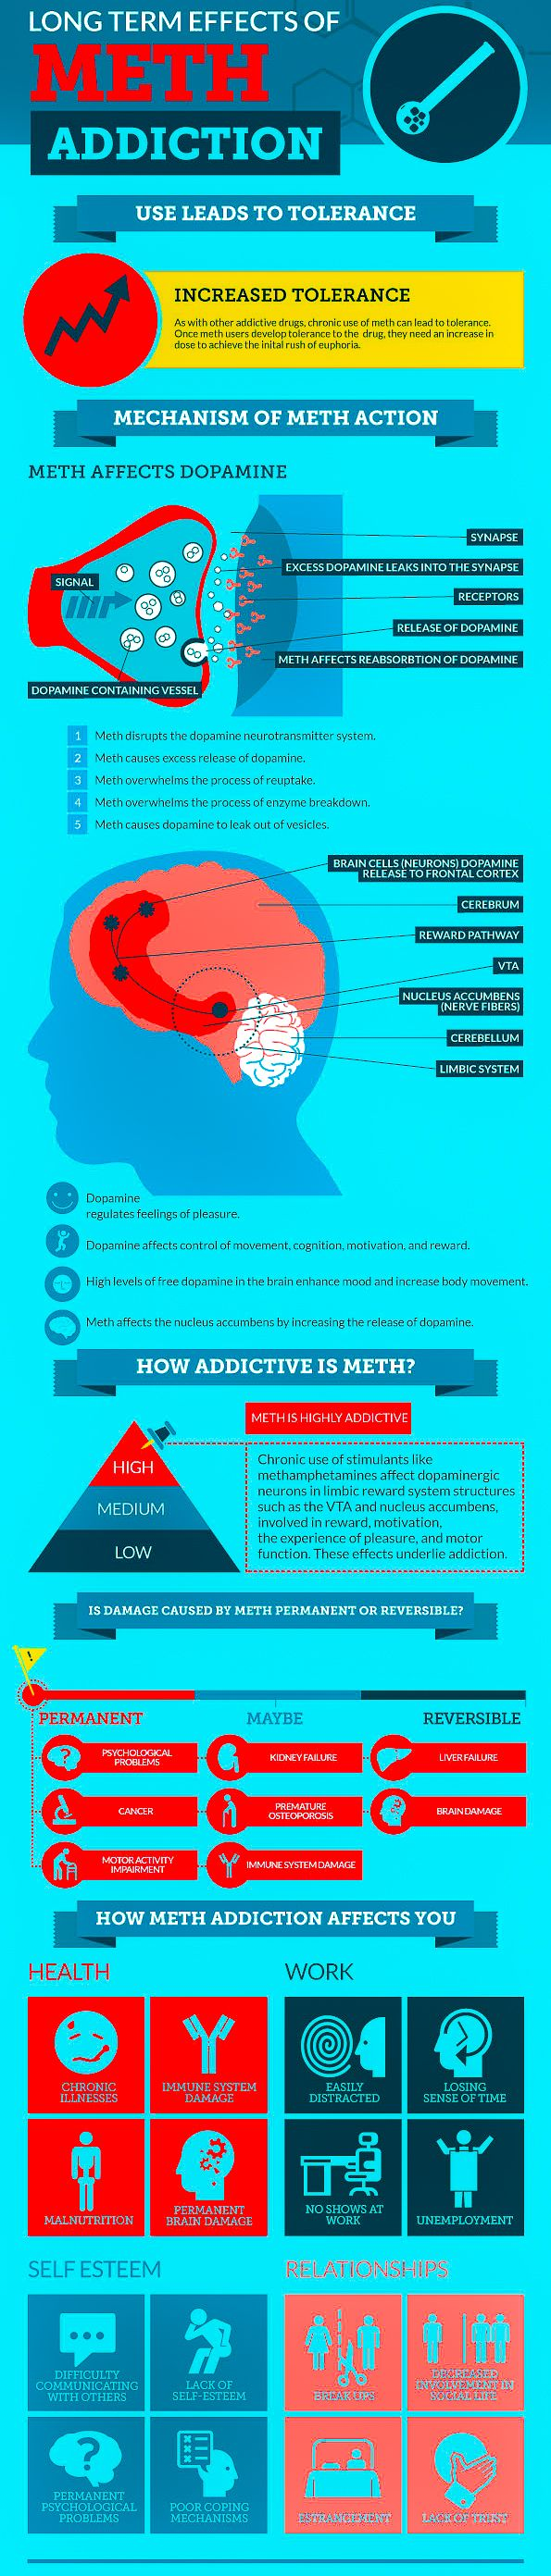 The basic workings of methamphetamine's psychoactive action in the central nervous system are outlined in this #infographic. #addictiontreatment